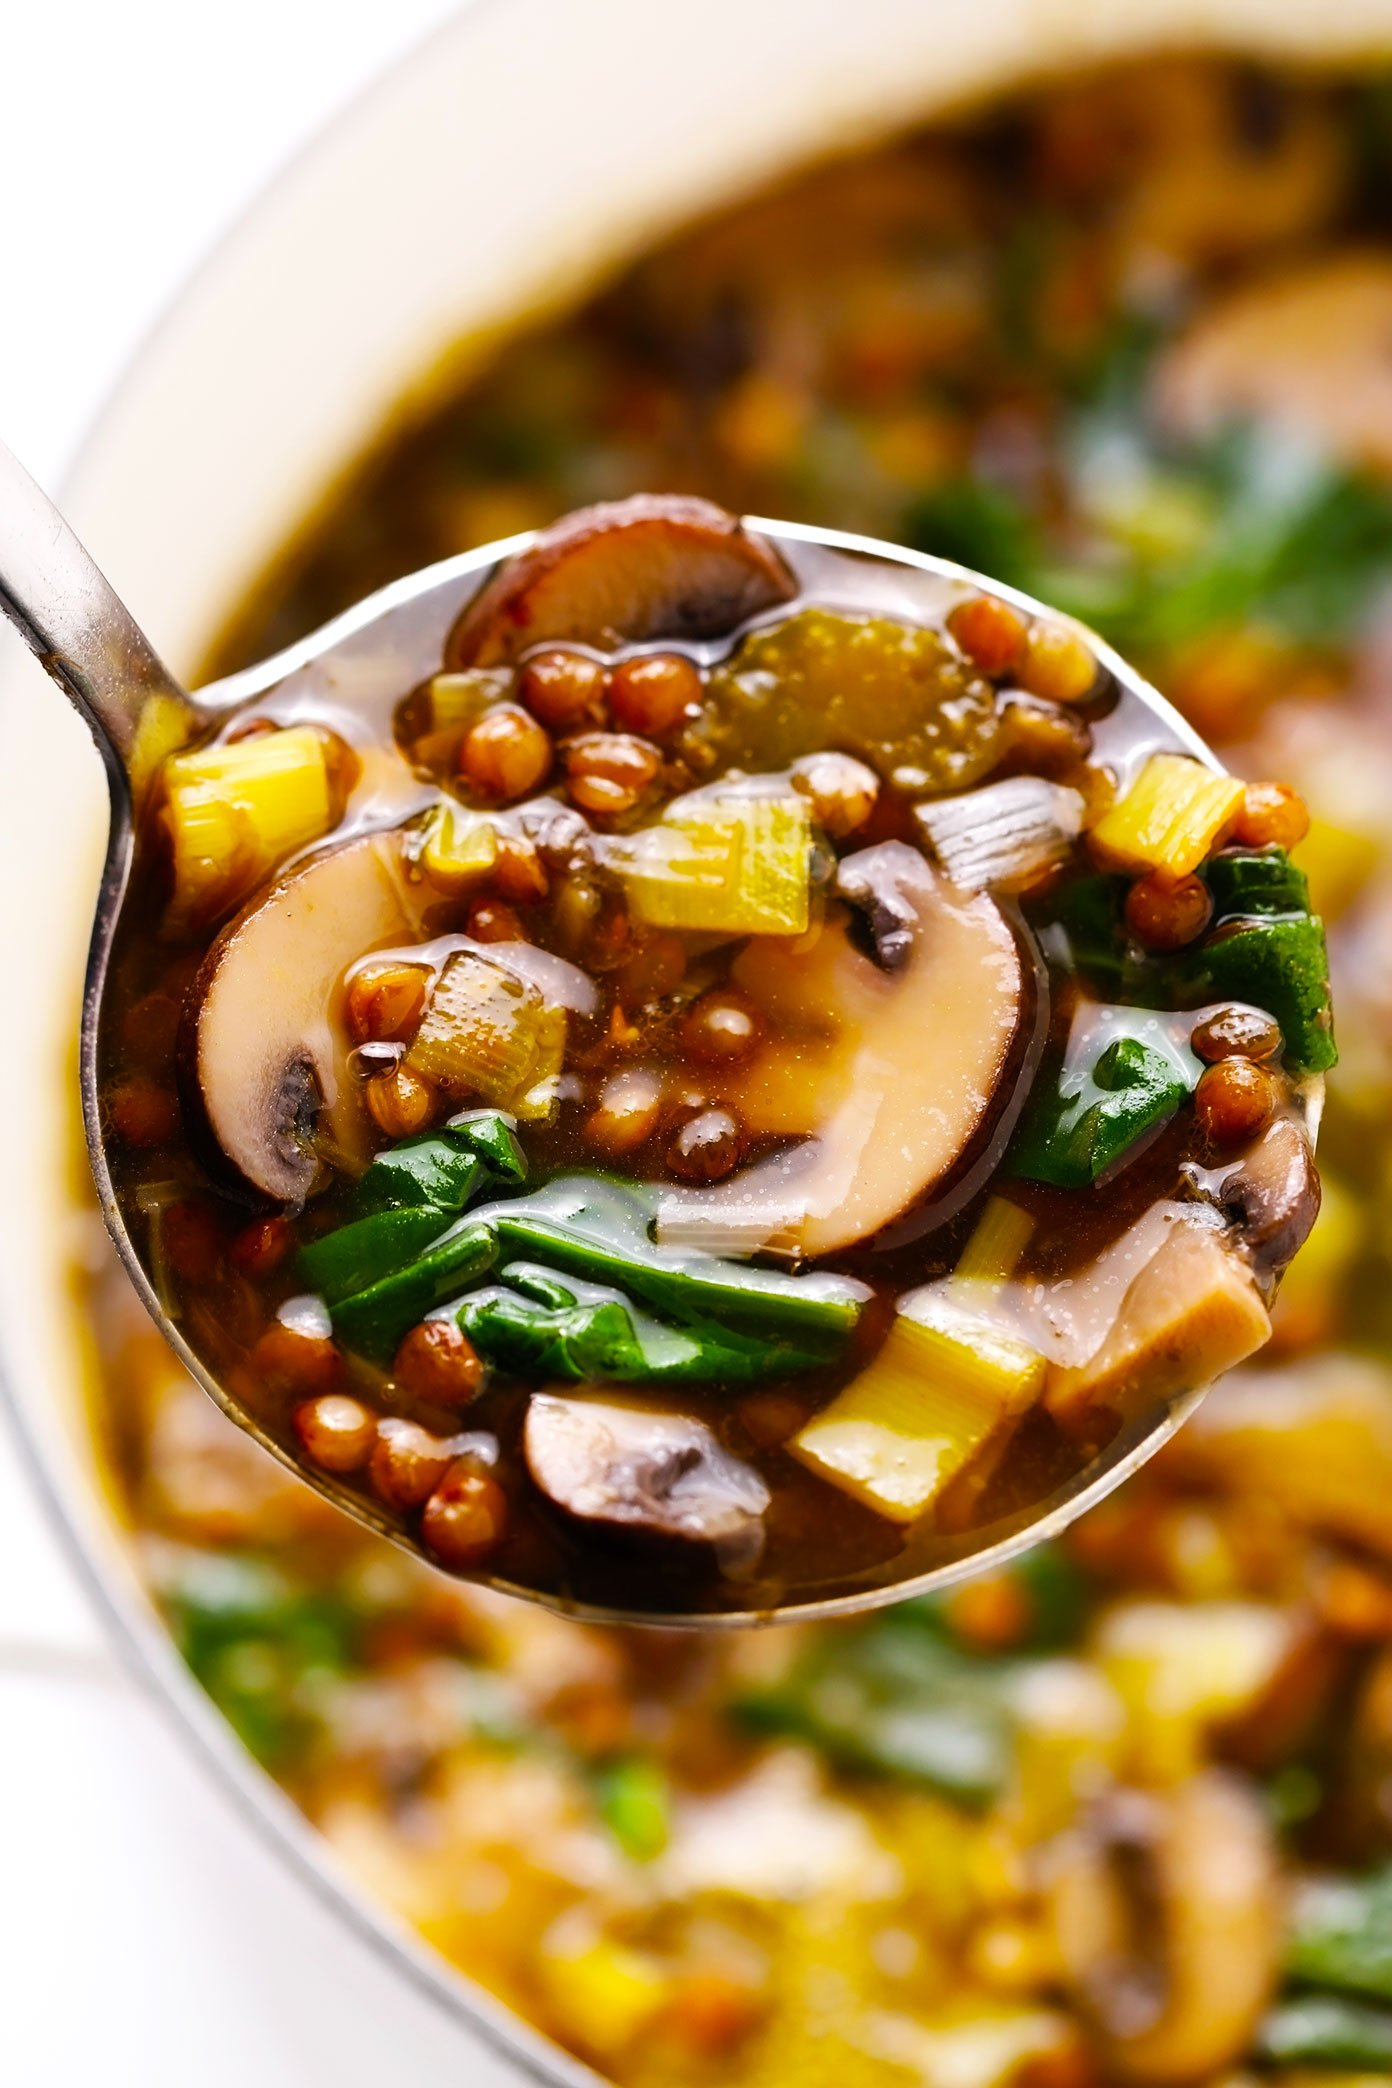 French Lentil Soup with Mushrooms and Spinach in Ladle